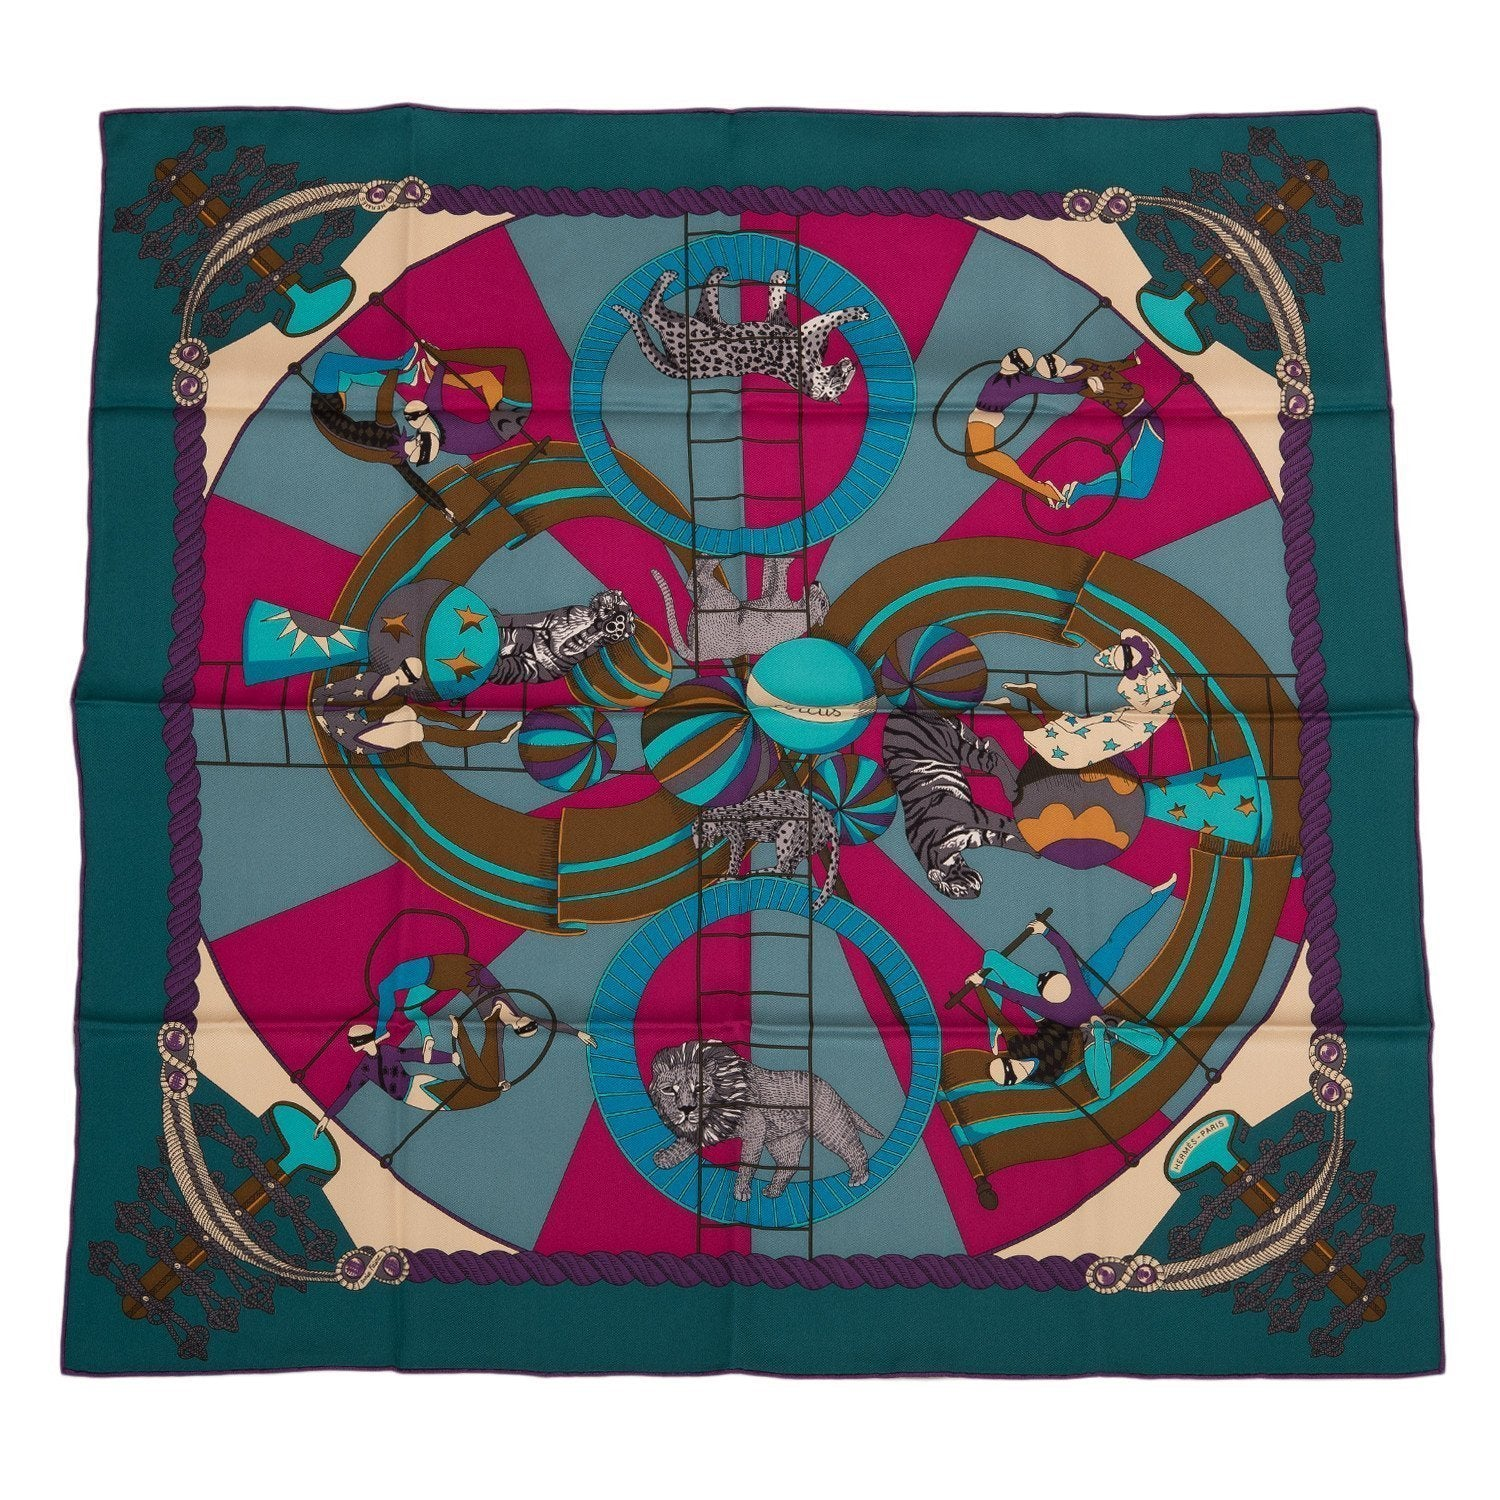 Hermes Circus Silk Twill Scarf 70Cm Scarves